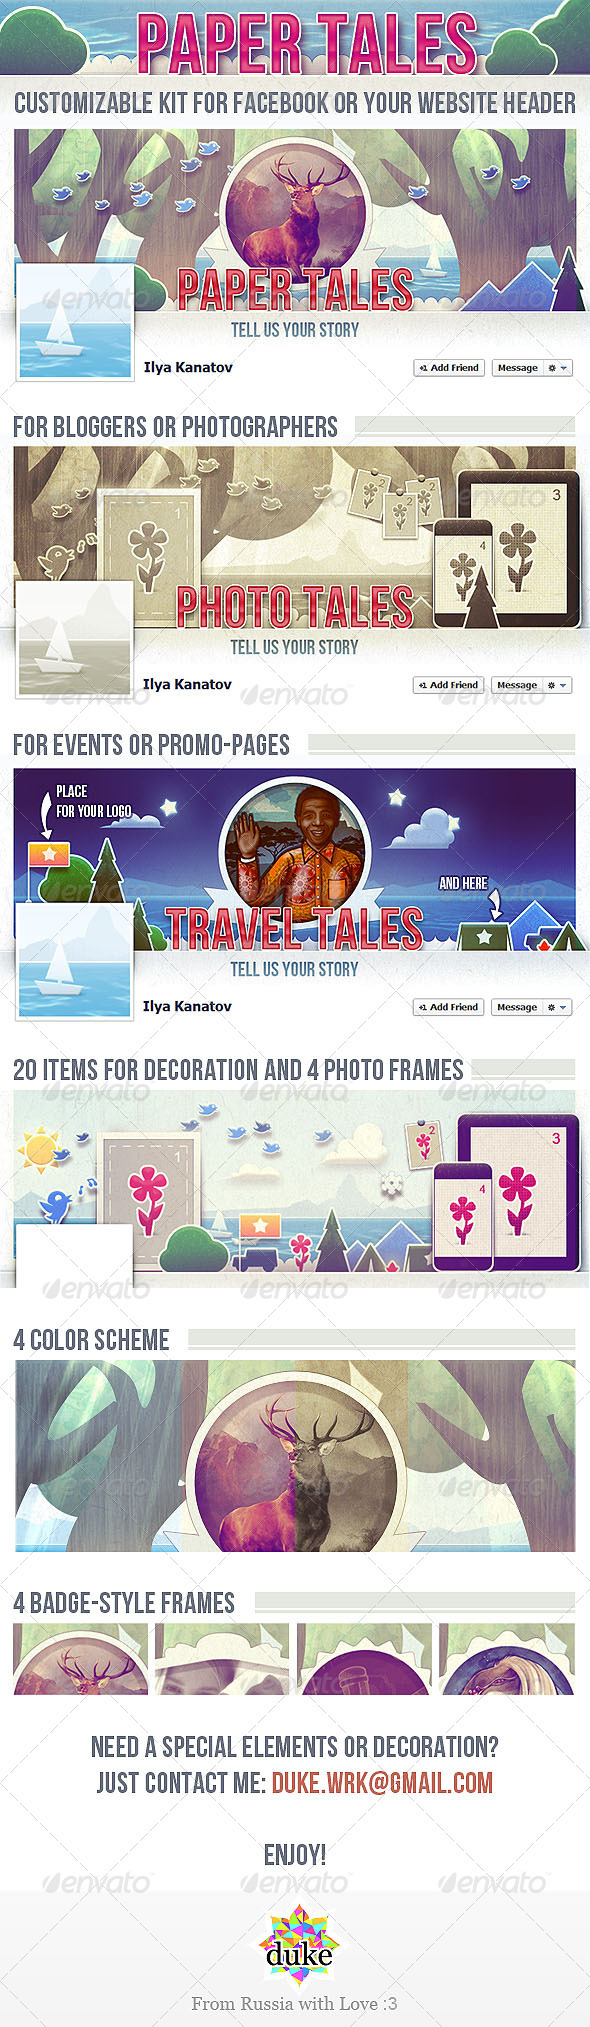 Paper Tales FB Timeline Cover - Facebook Timeline Covers Social Media